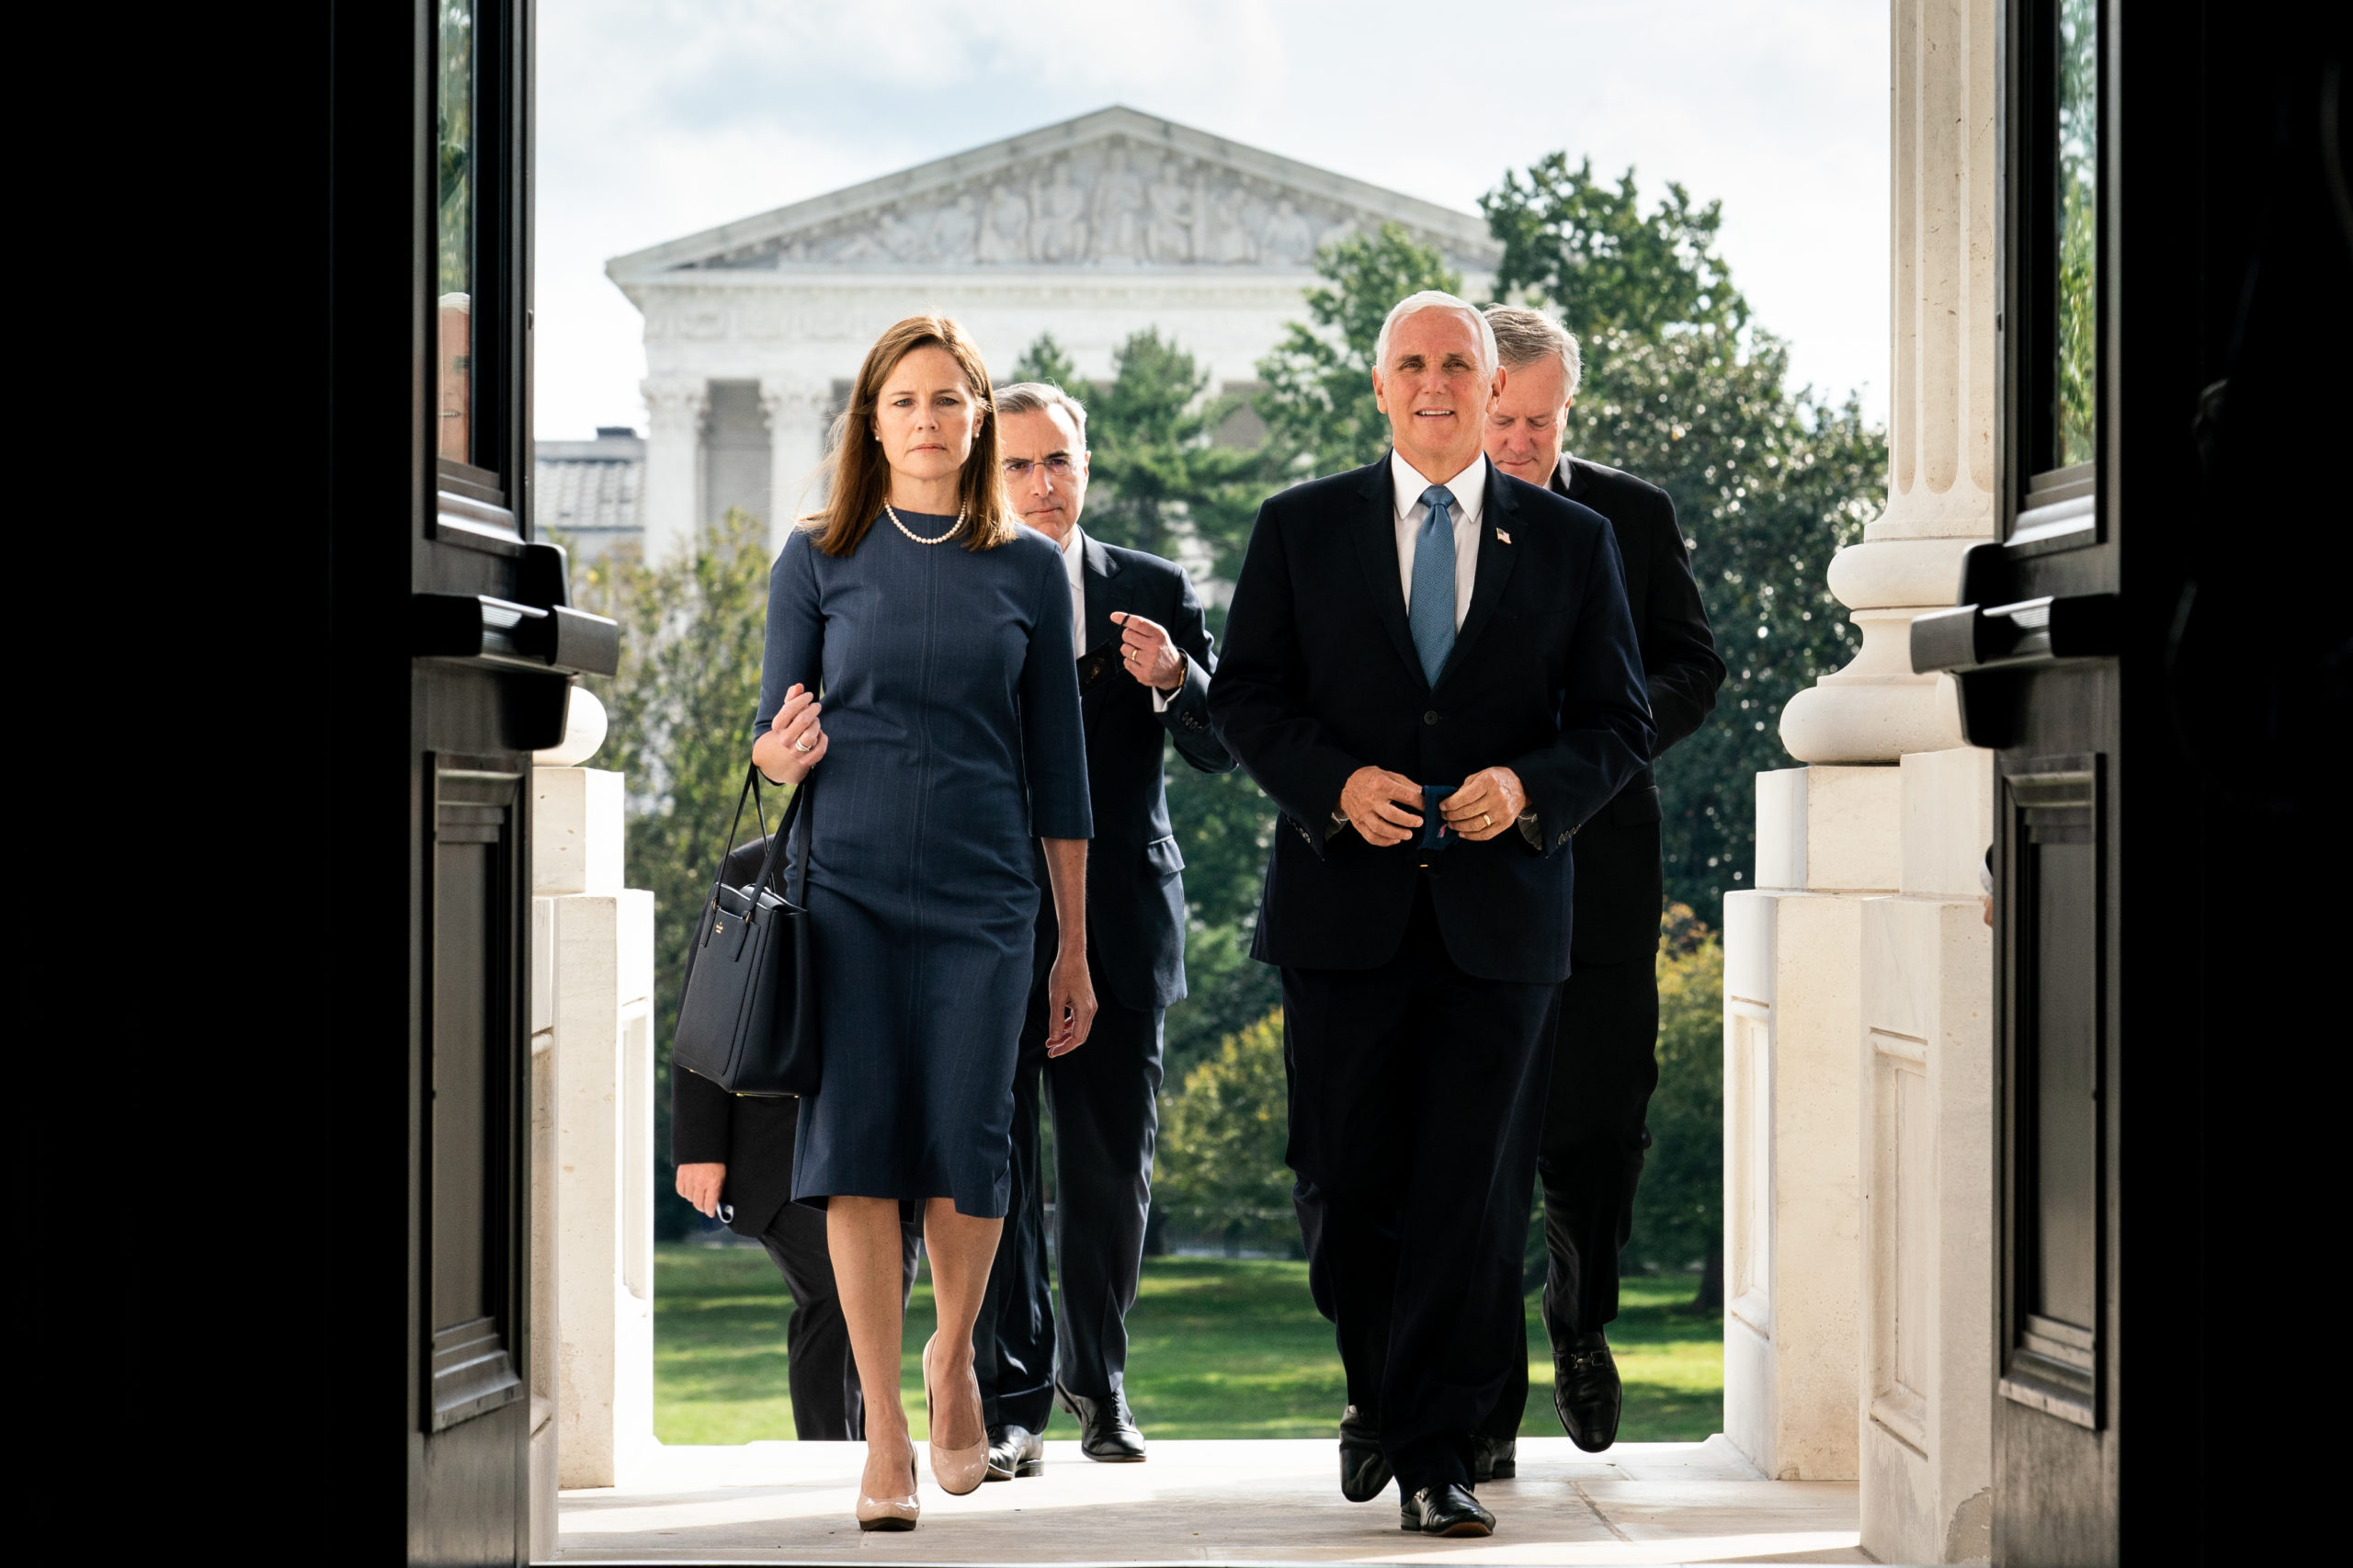 WASHINGTON, DC - SEPTEMBER 29: Seventh U.S. Circuit Court Judge Amy Coney Barrett, President Donald Trump's nominee for the U.S. Supreme Court, and Vice President Mike Pence arrive at the U.S. Capitol where Barrett is attending a series of meetings in preparation for her confirmation hearing, on September 29, 2020 in Washington, DC. (Erin Schaff-Pool/Getty Images)